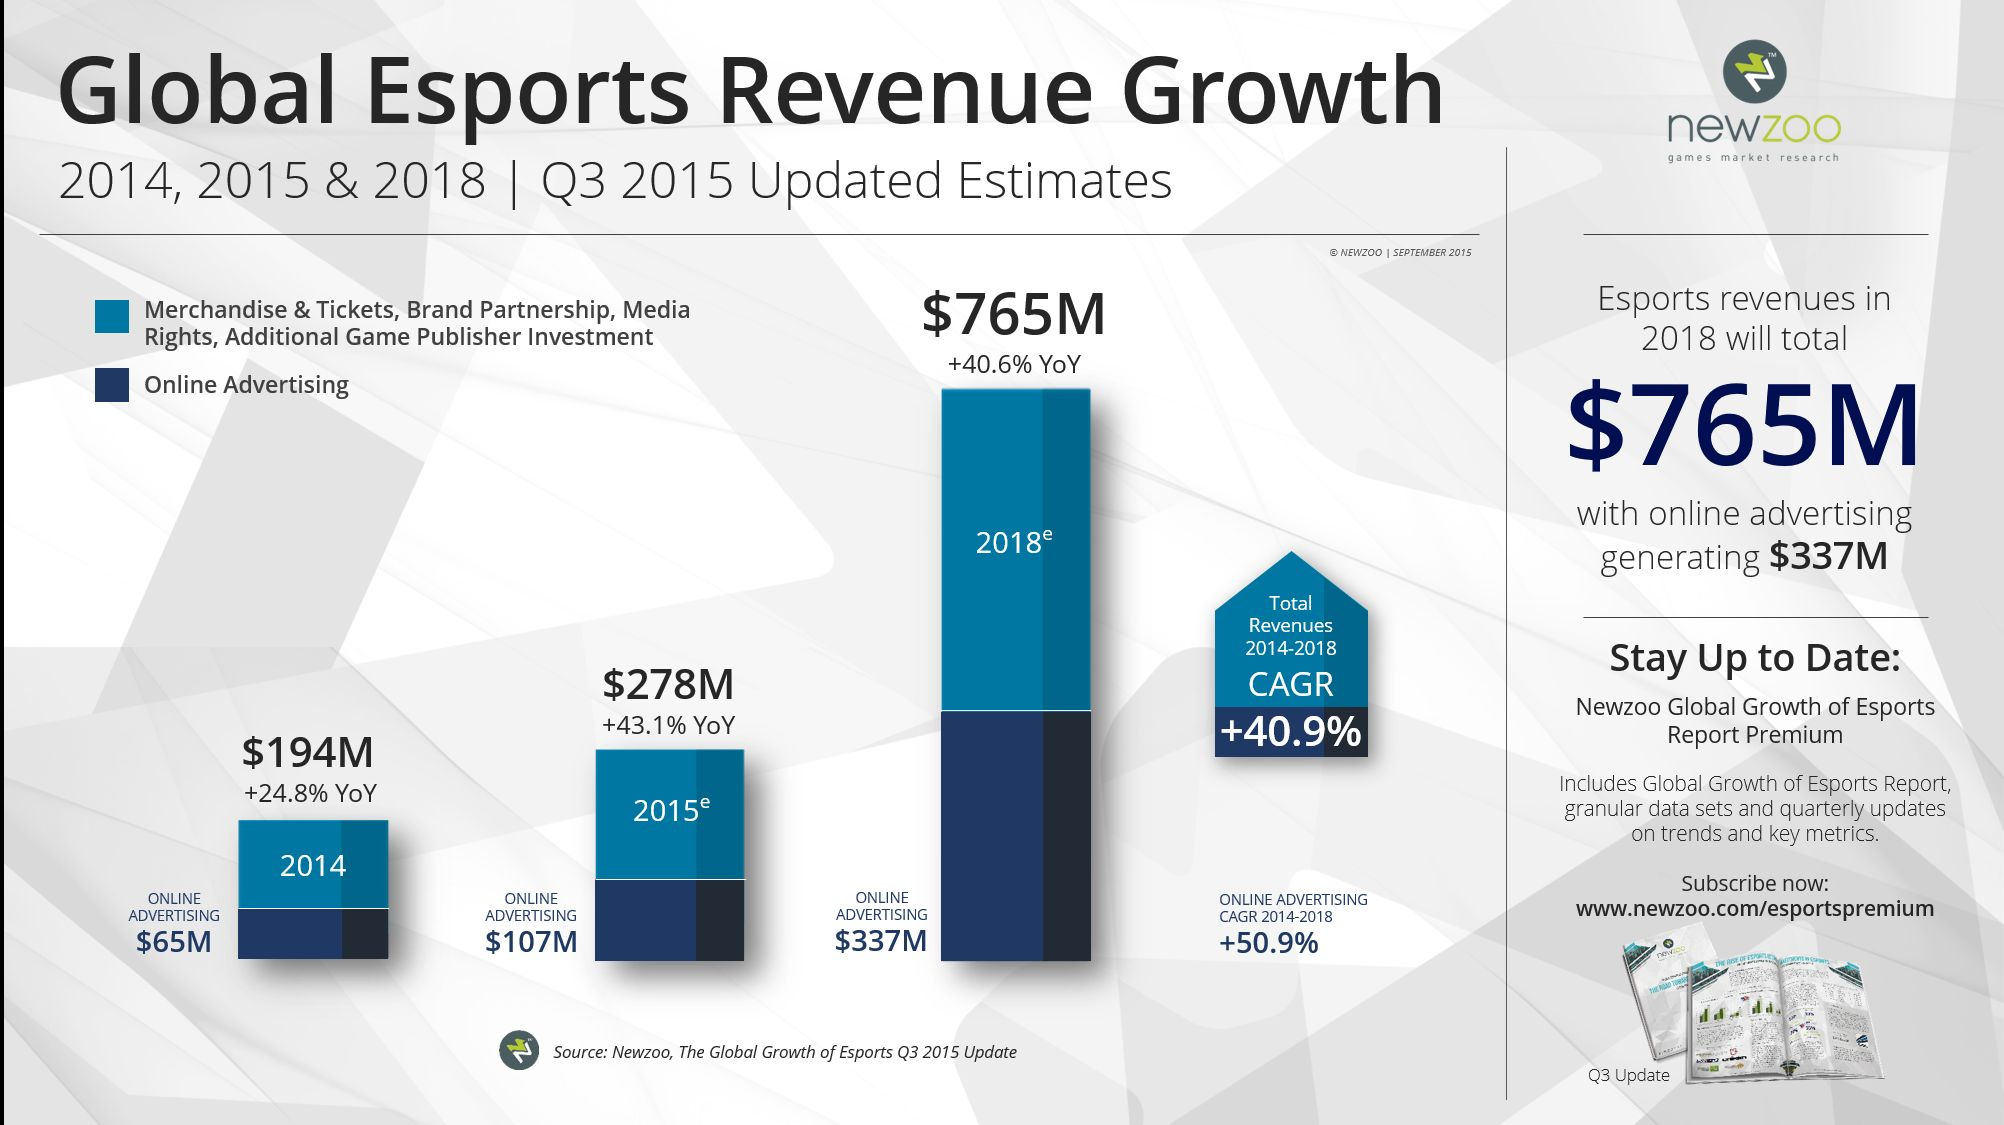 newzoo-esports-2015-q3-update-revenue-growth-large